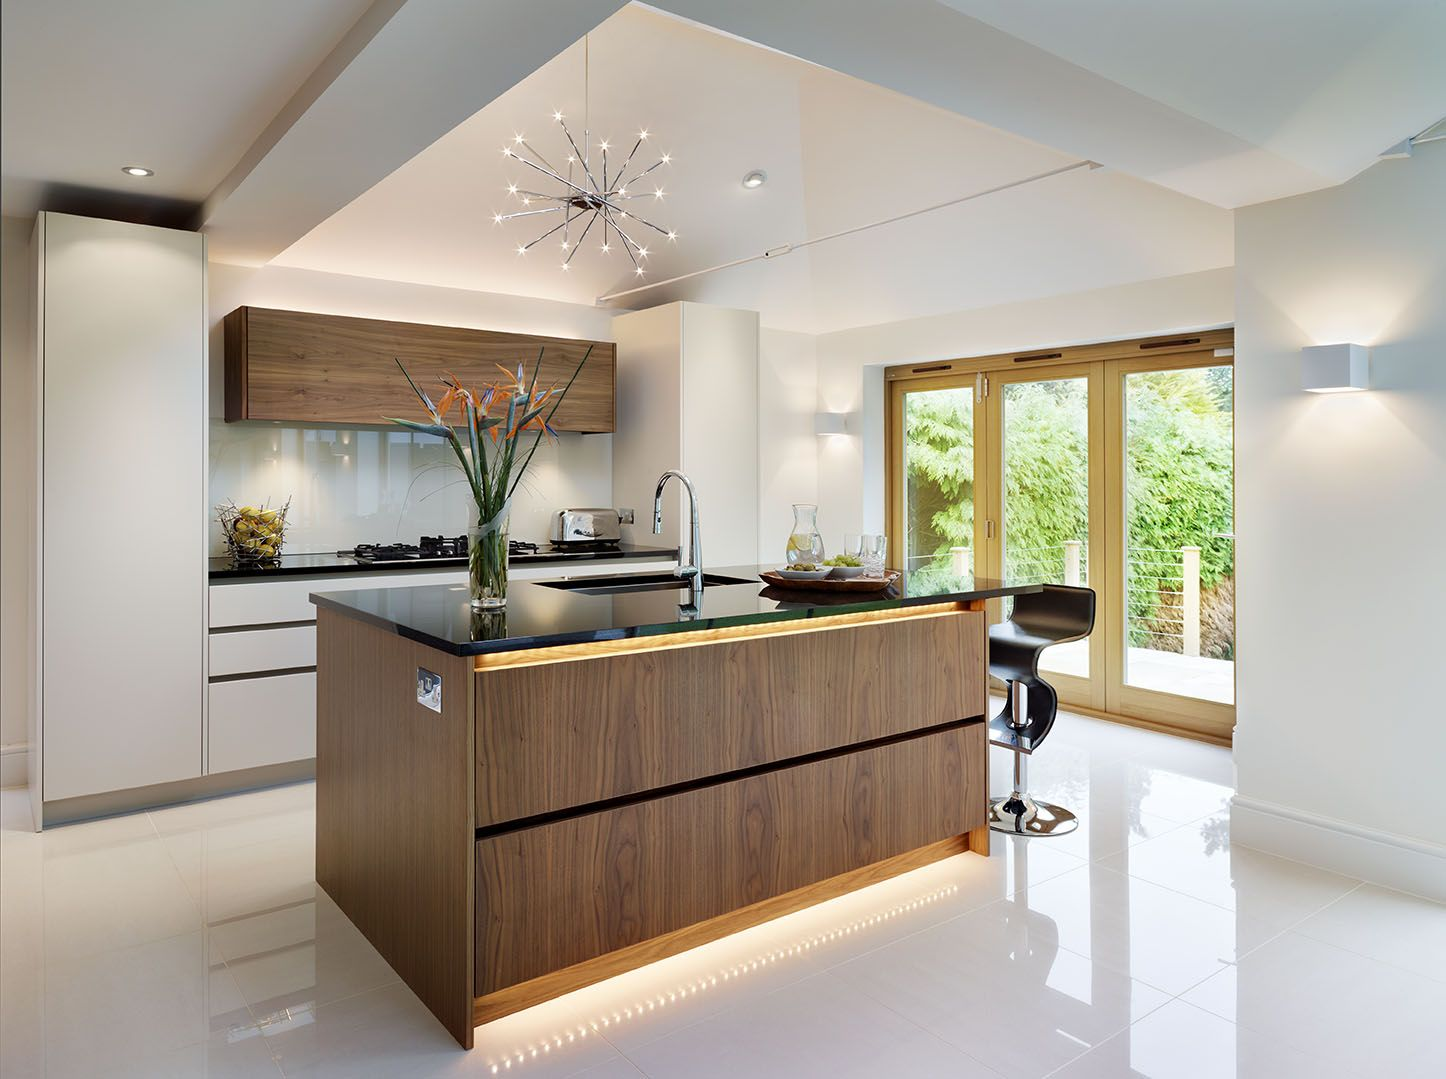 Best Roundhouse Bespoke Kitchen Island In Contemporary Kitchen 640 x 480